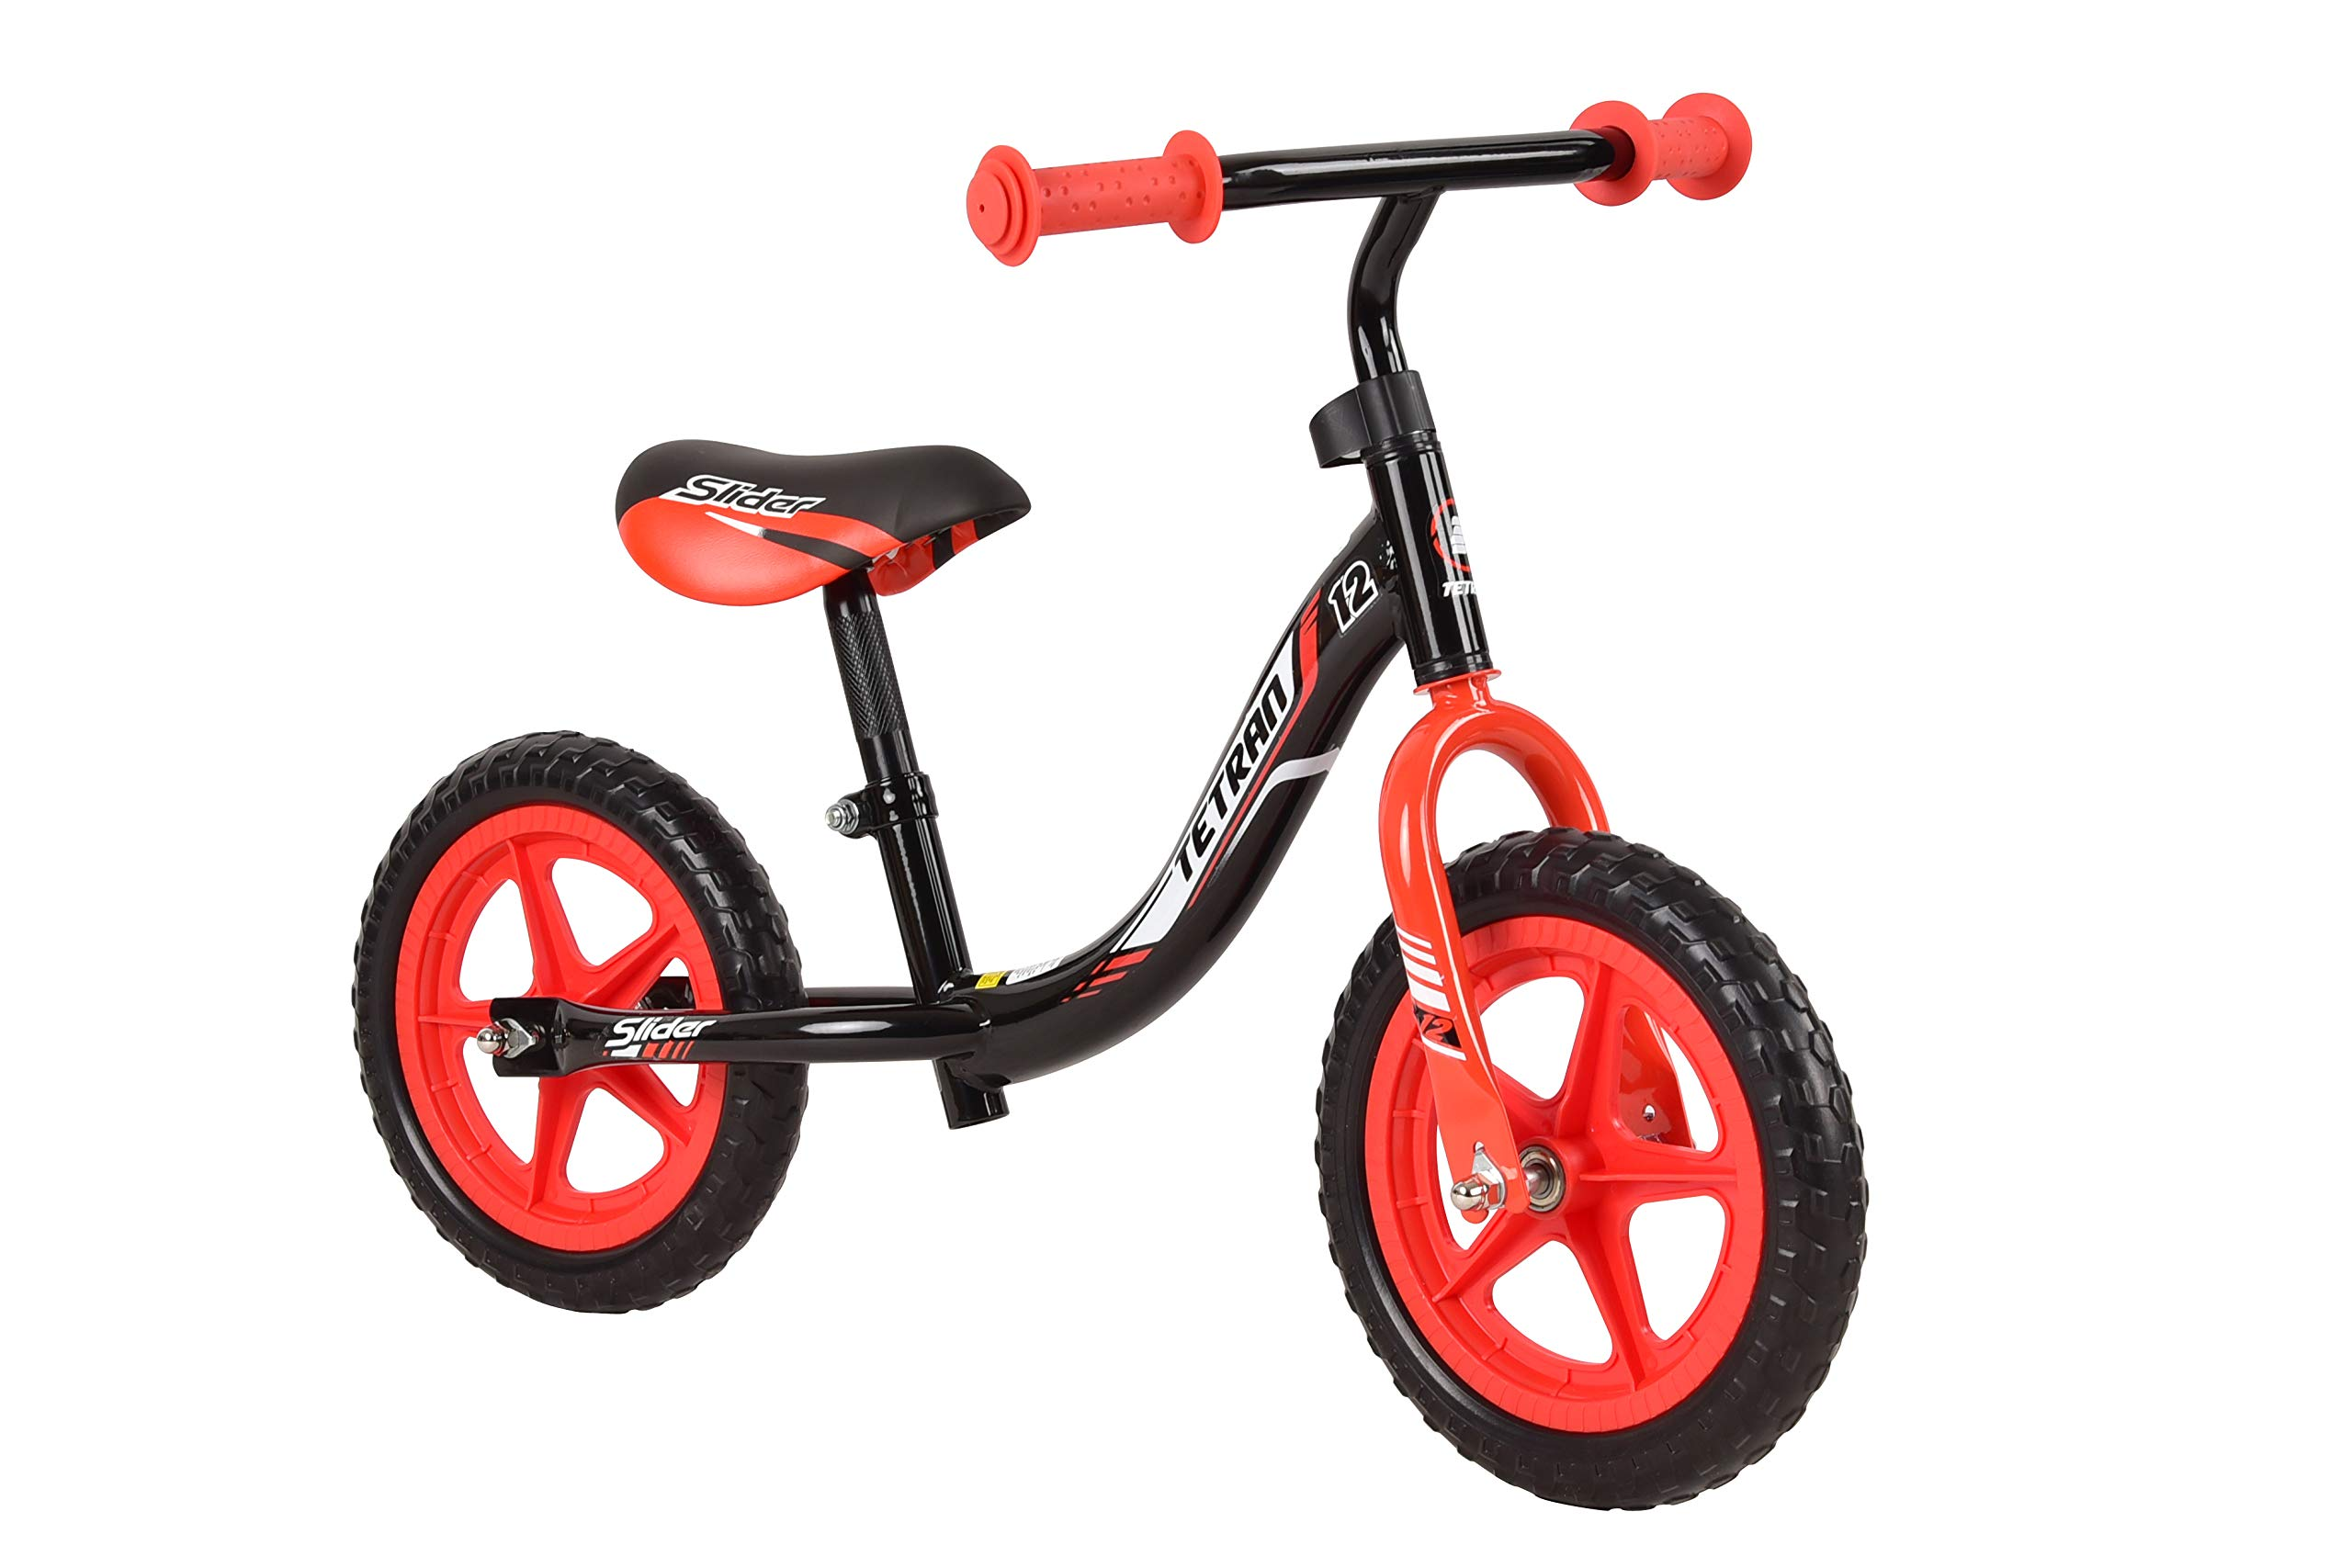 Tetran Kids -12 Inch Balance Bikes, Ages 2 to 5, Multi-Colors for Boys and Girls